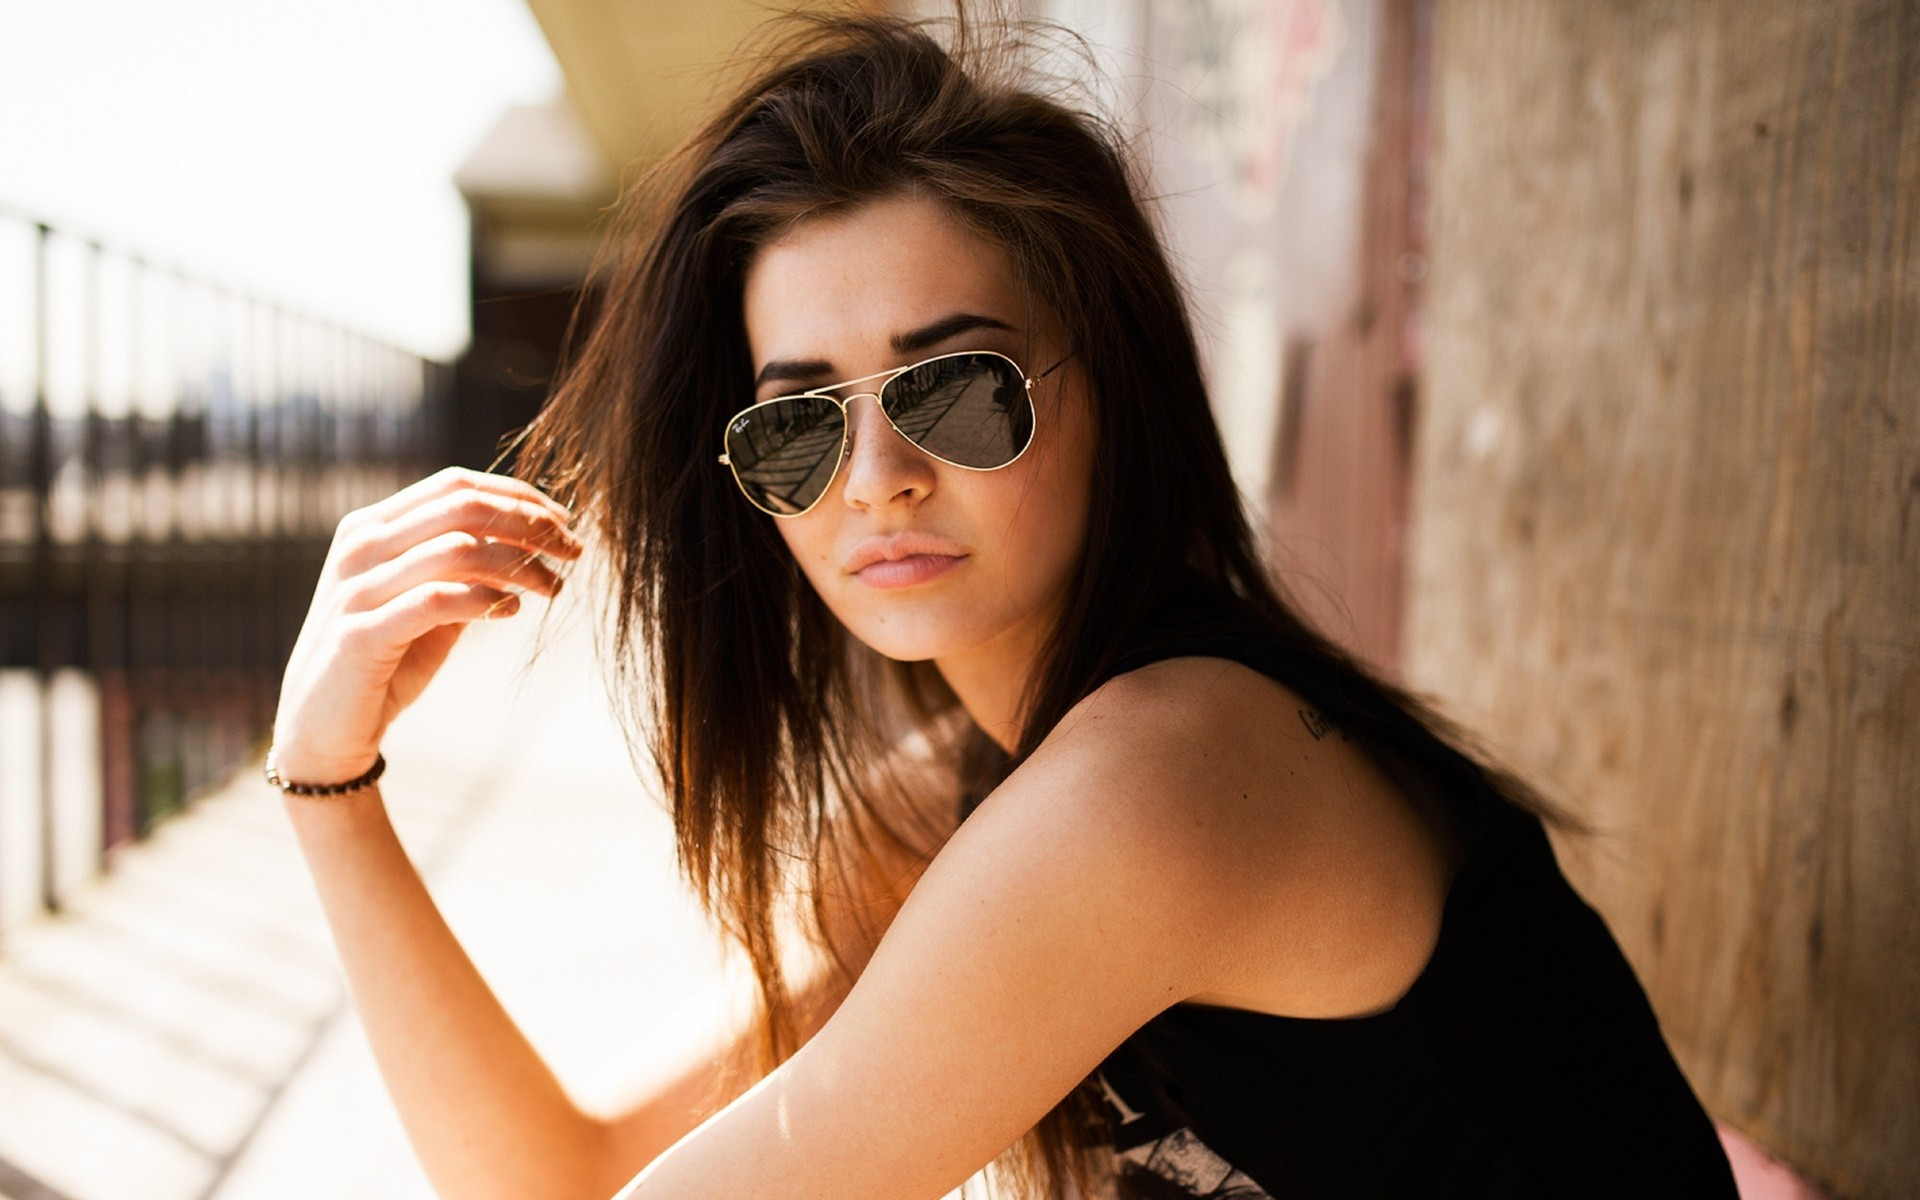 girl-with-aviator-sunglasses-girl-hd-wallpaper-1920x1200-3927.jpg